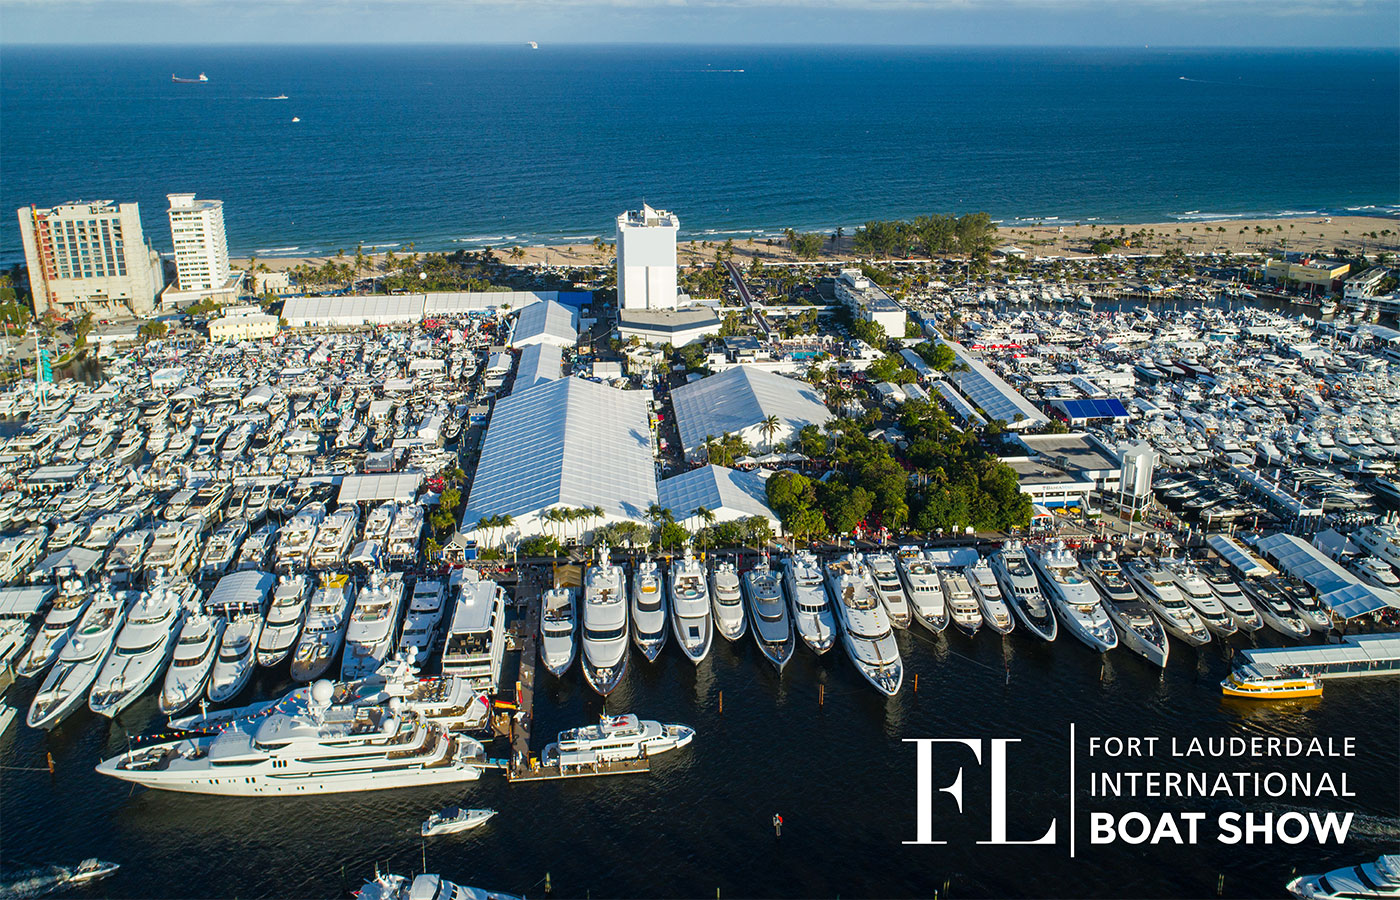 Fort Lauderdale Boat Show 2019 [Featured Yachts + Guide]